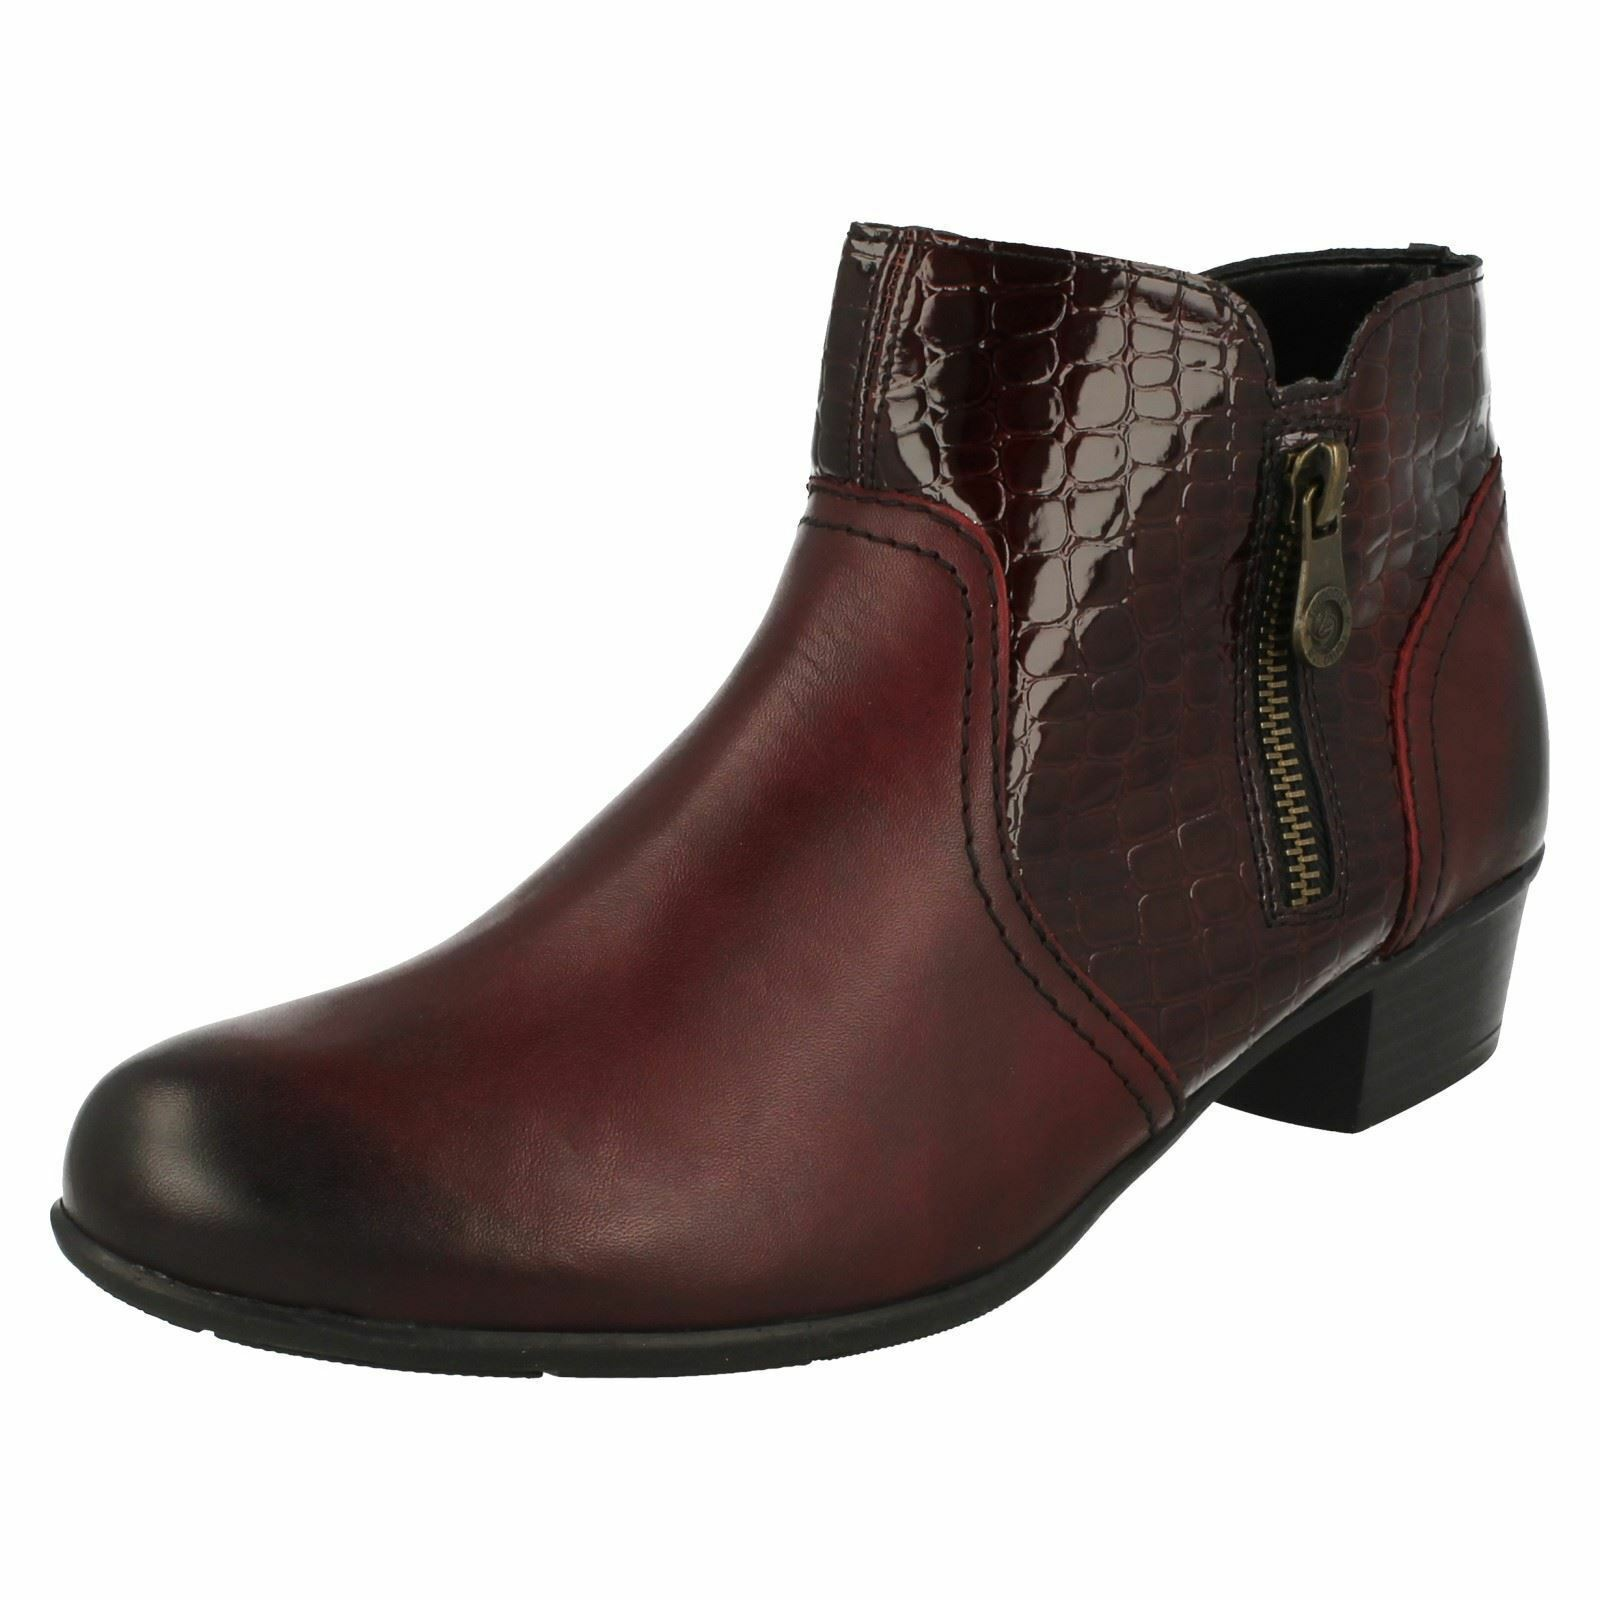 Mujer Remonte Remonte Remonte Botines LABEL d3574 51407f